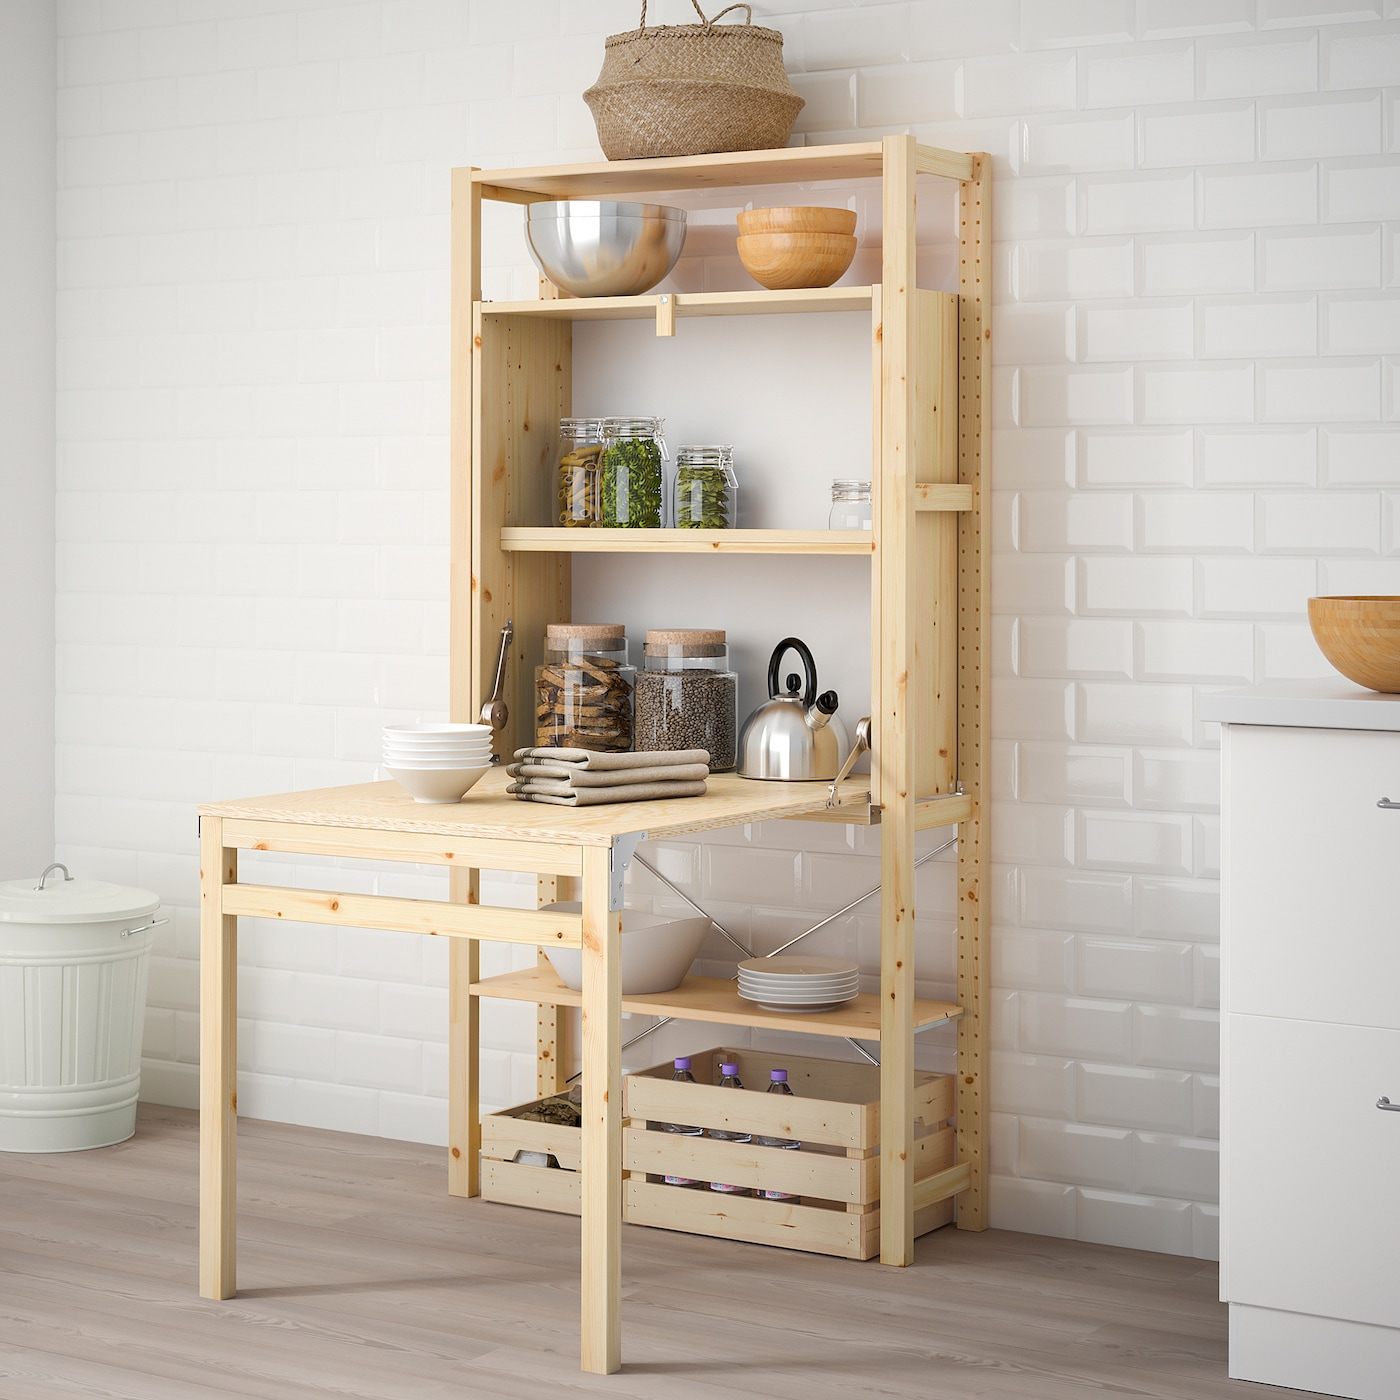 IVAR 5 sec/storage unit w foldable table 5x5-504x579 cm